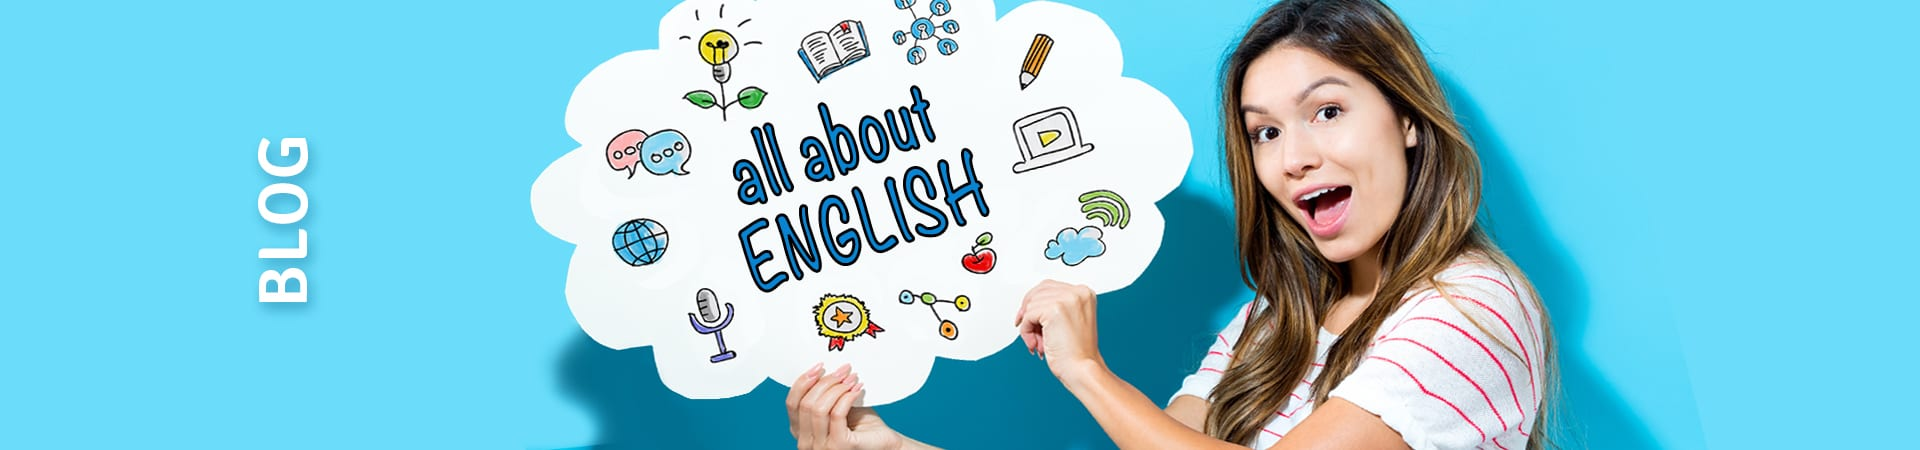 Blog - All About English